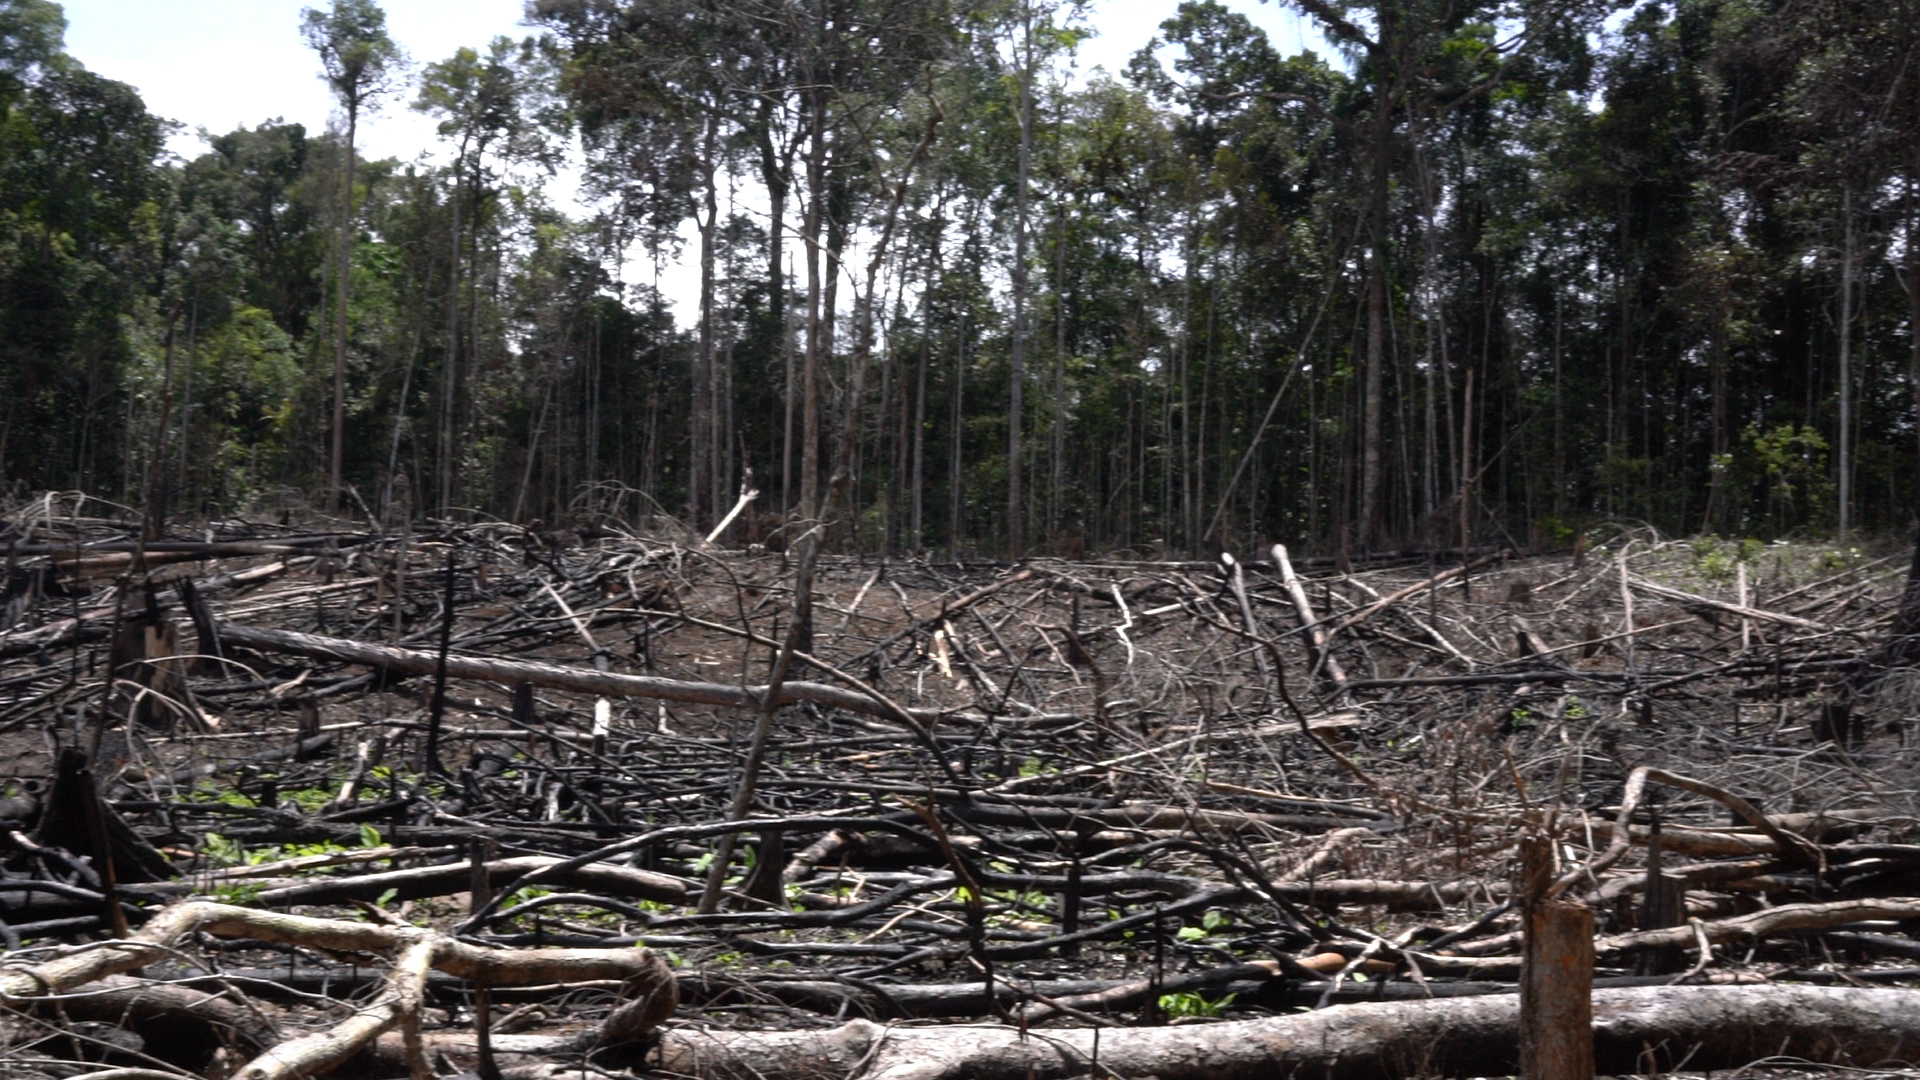 A site where the trees have been burnt and chopped down in the nature reserve.